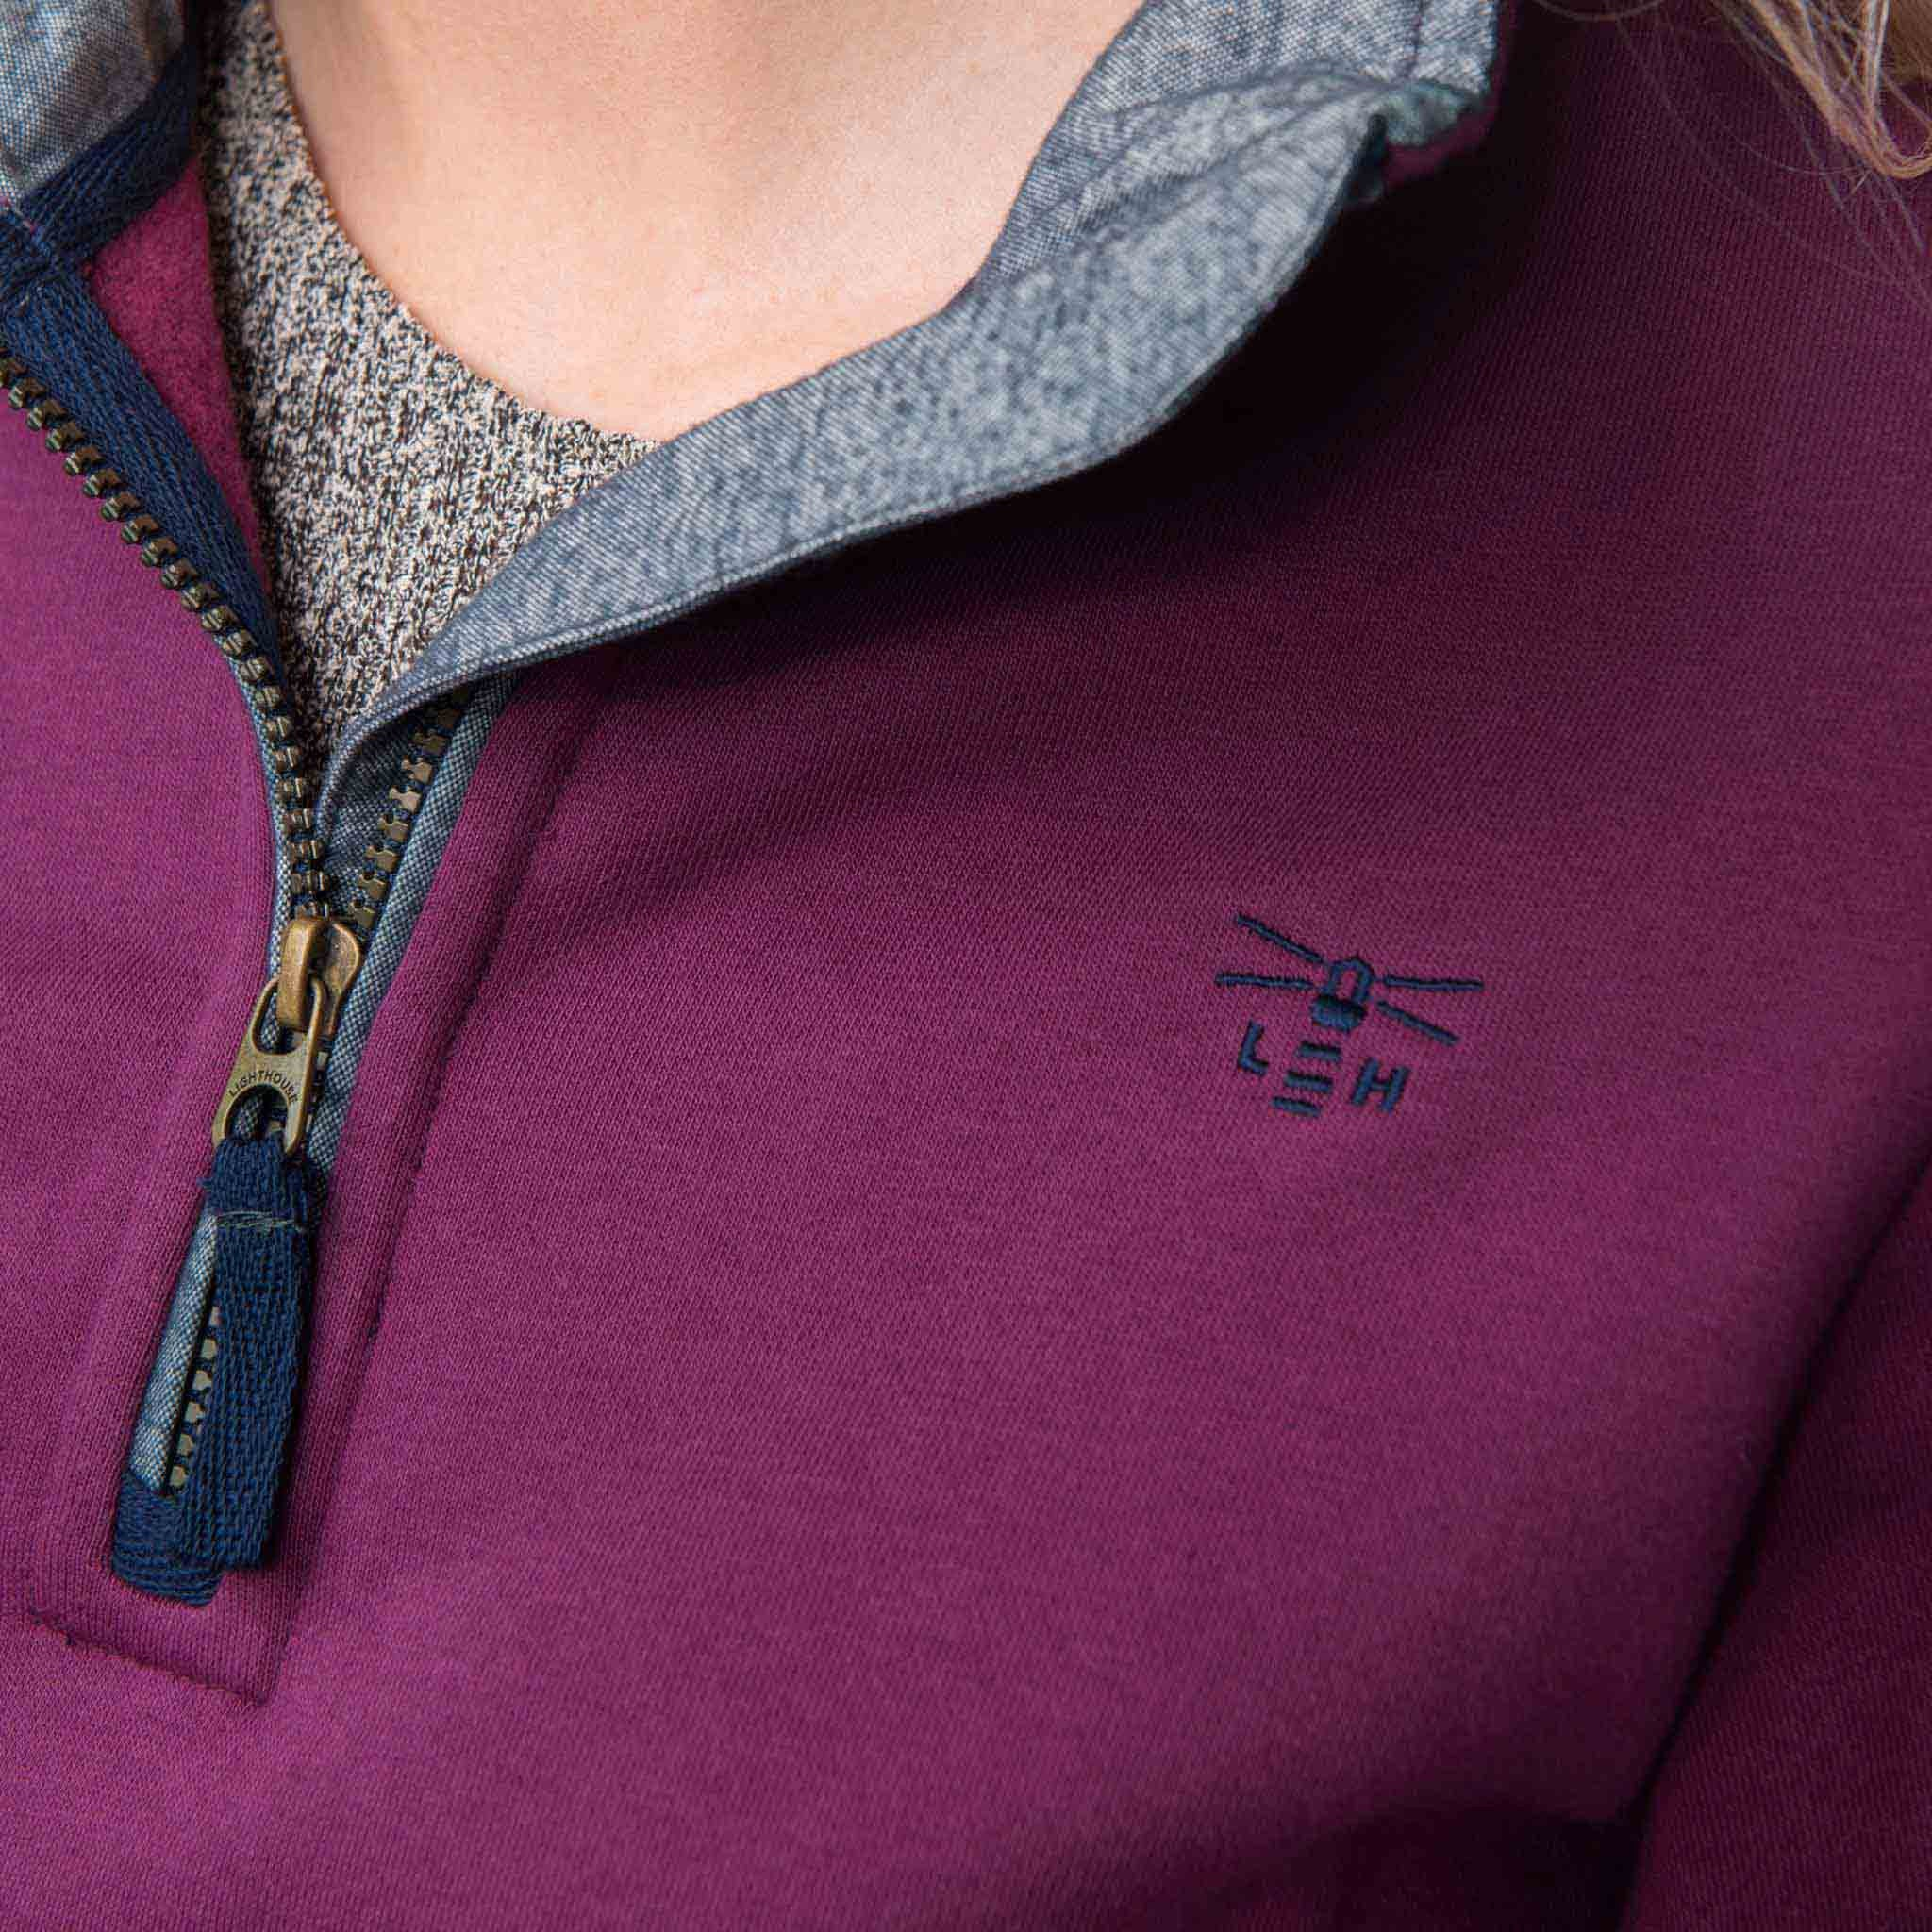 Lighthouse Womens Skye Half Zip Cotton Sweatshirt in Purple. Detail shot.